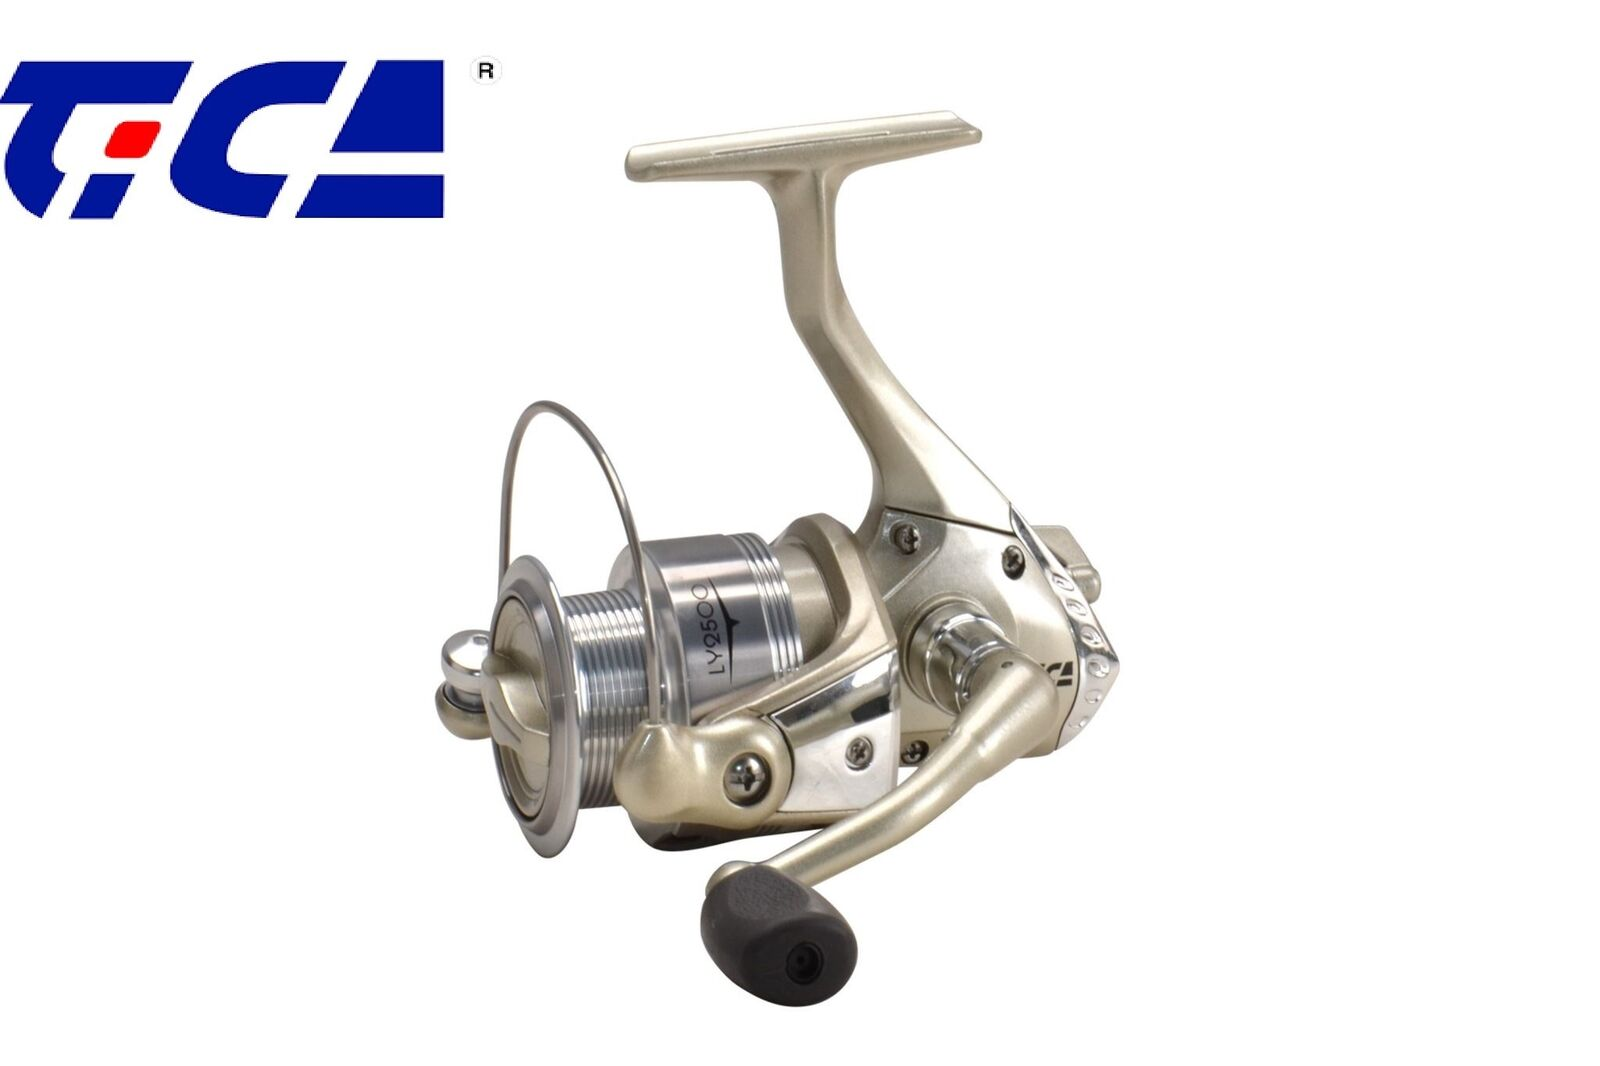 TiCA Cambria LY Rear Drag Spinning Reel 4bb  + 1rb  save 60% discount and fast shipping worldwide